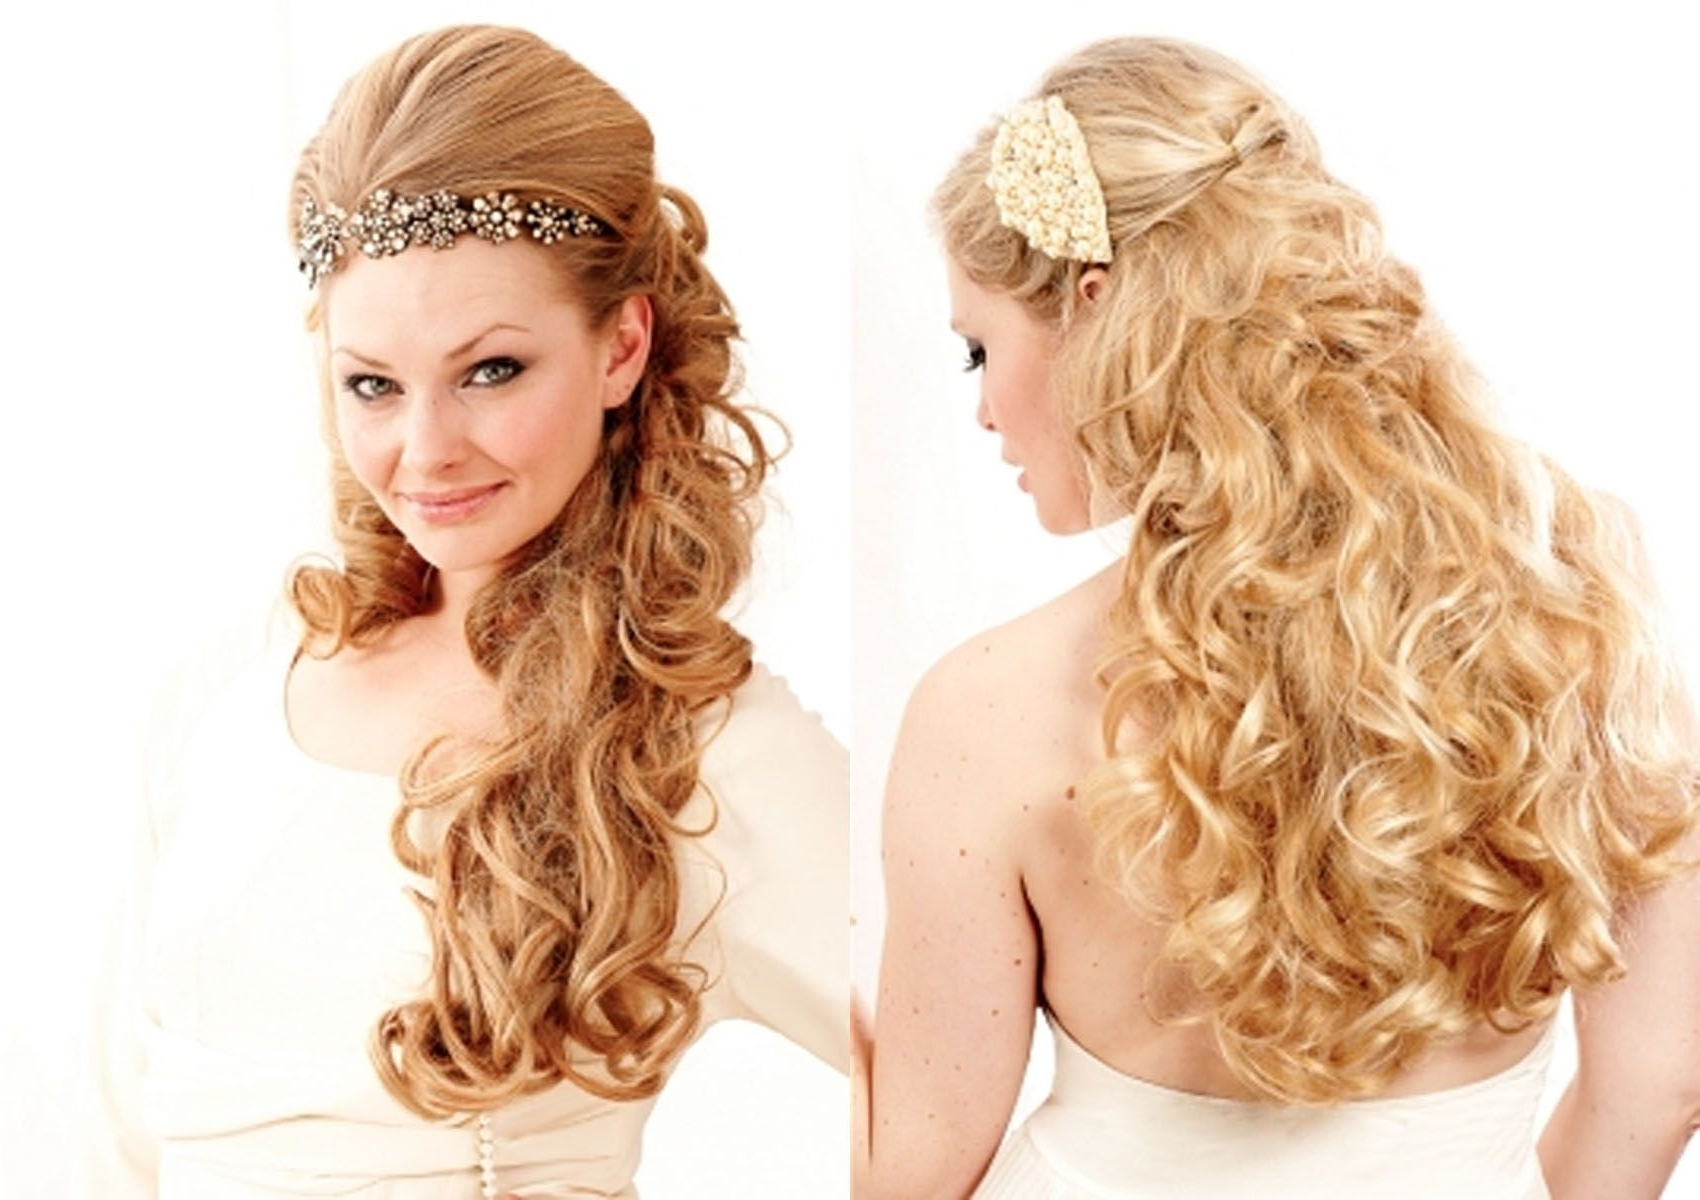 2017 Wedding Hairstyles For Long Hair With Headband With 20S Hairstyles For Long Hair Headband (View 1 of 15)